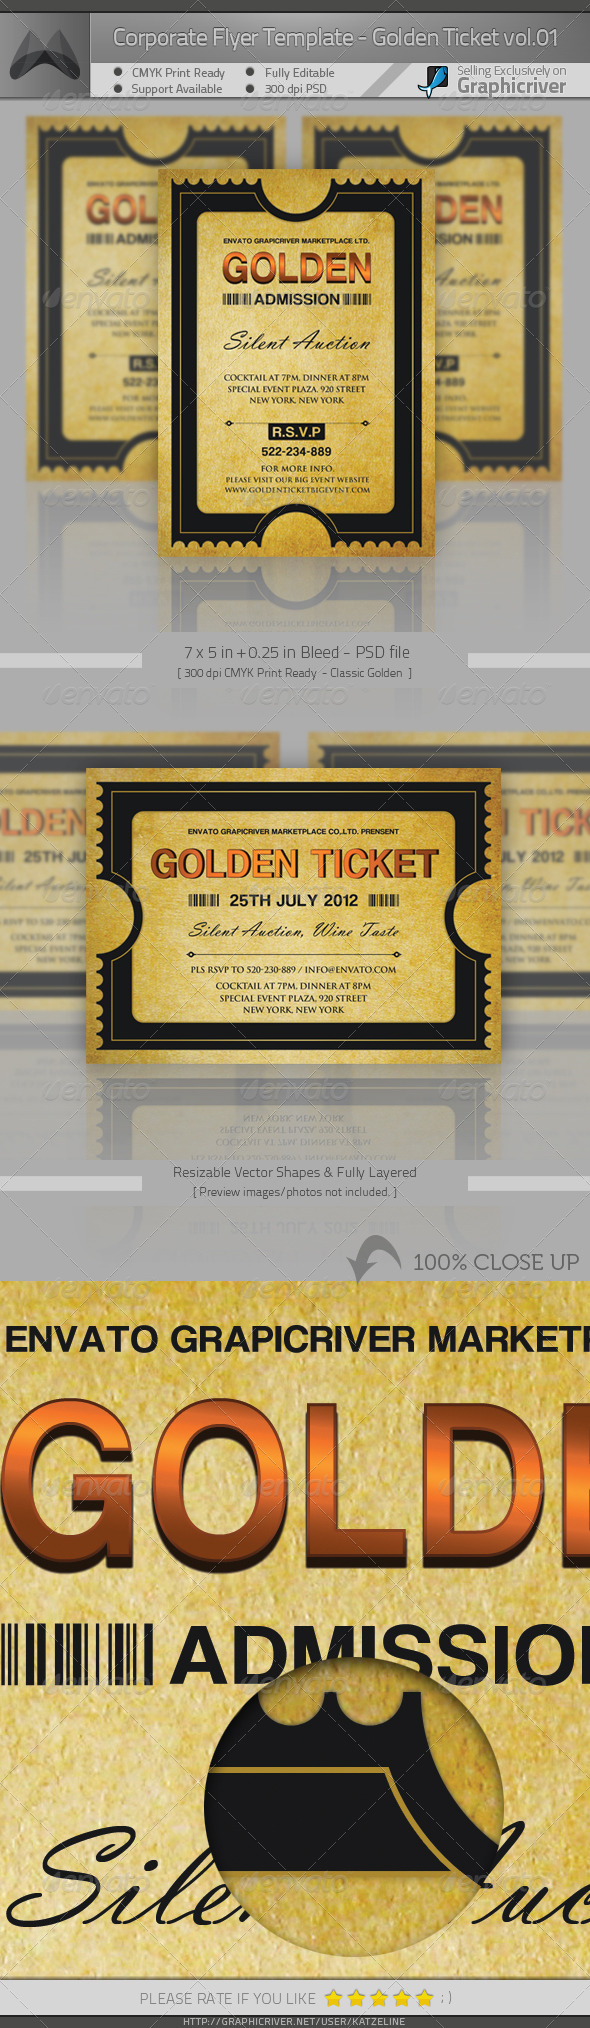 Corporate Invitation - Golden Ticket - Invitations Cards & Invites